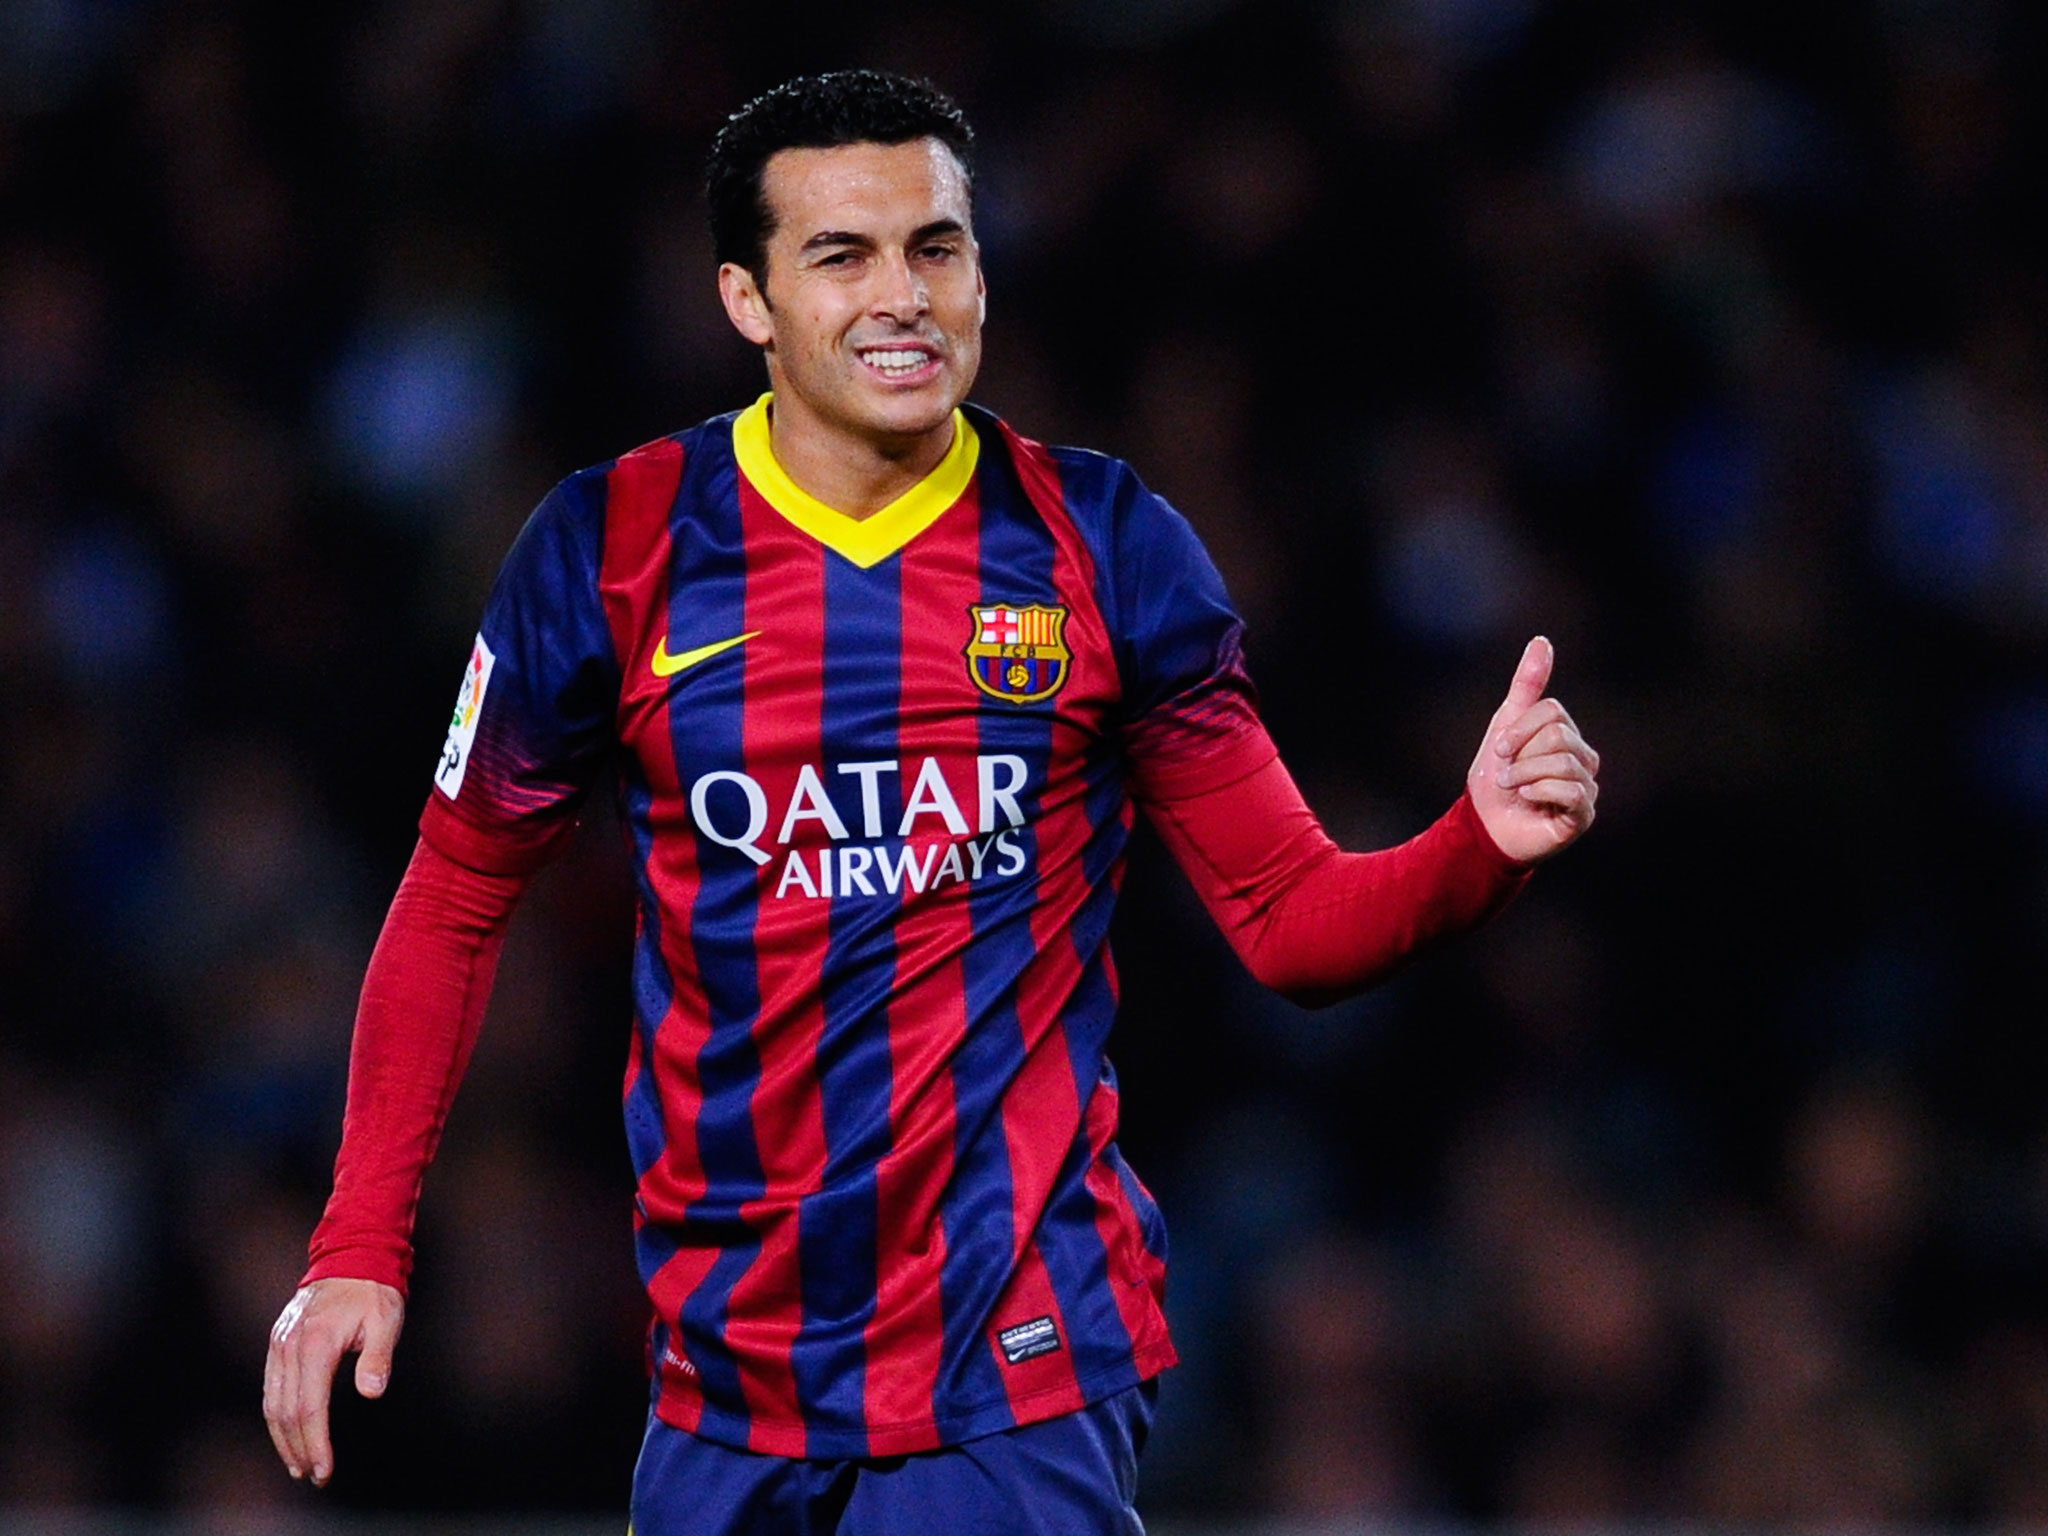 Only a matter of time before Pedro is a red